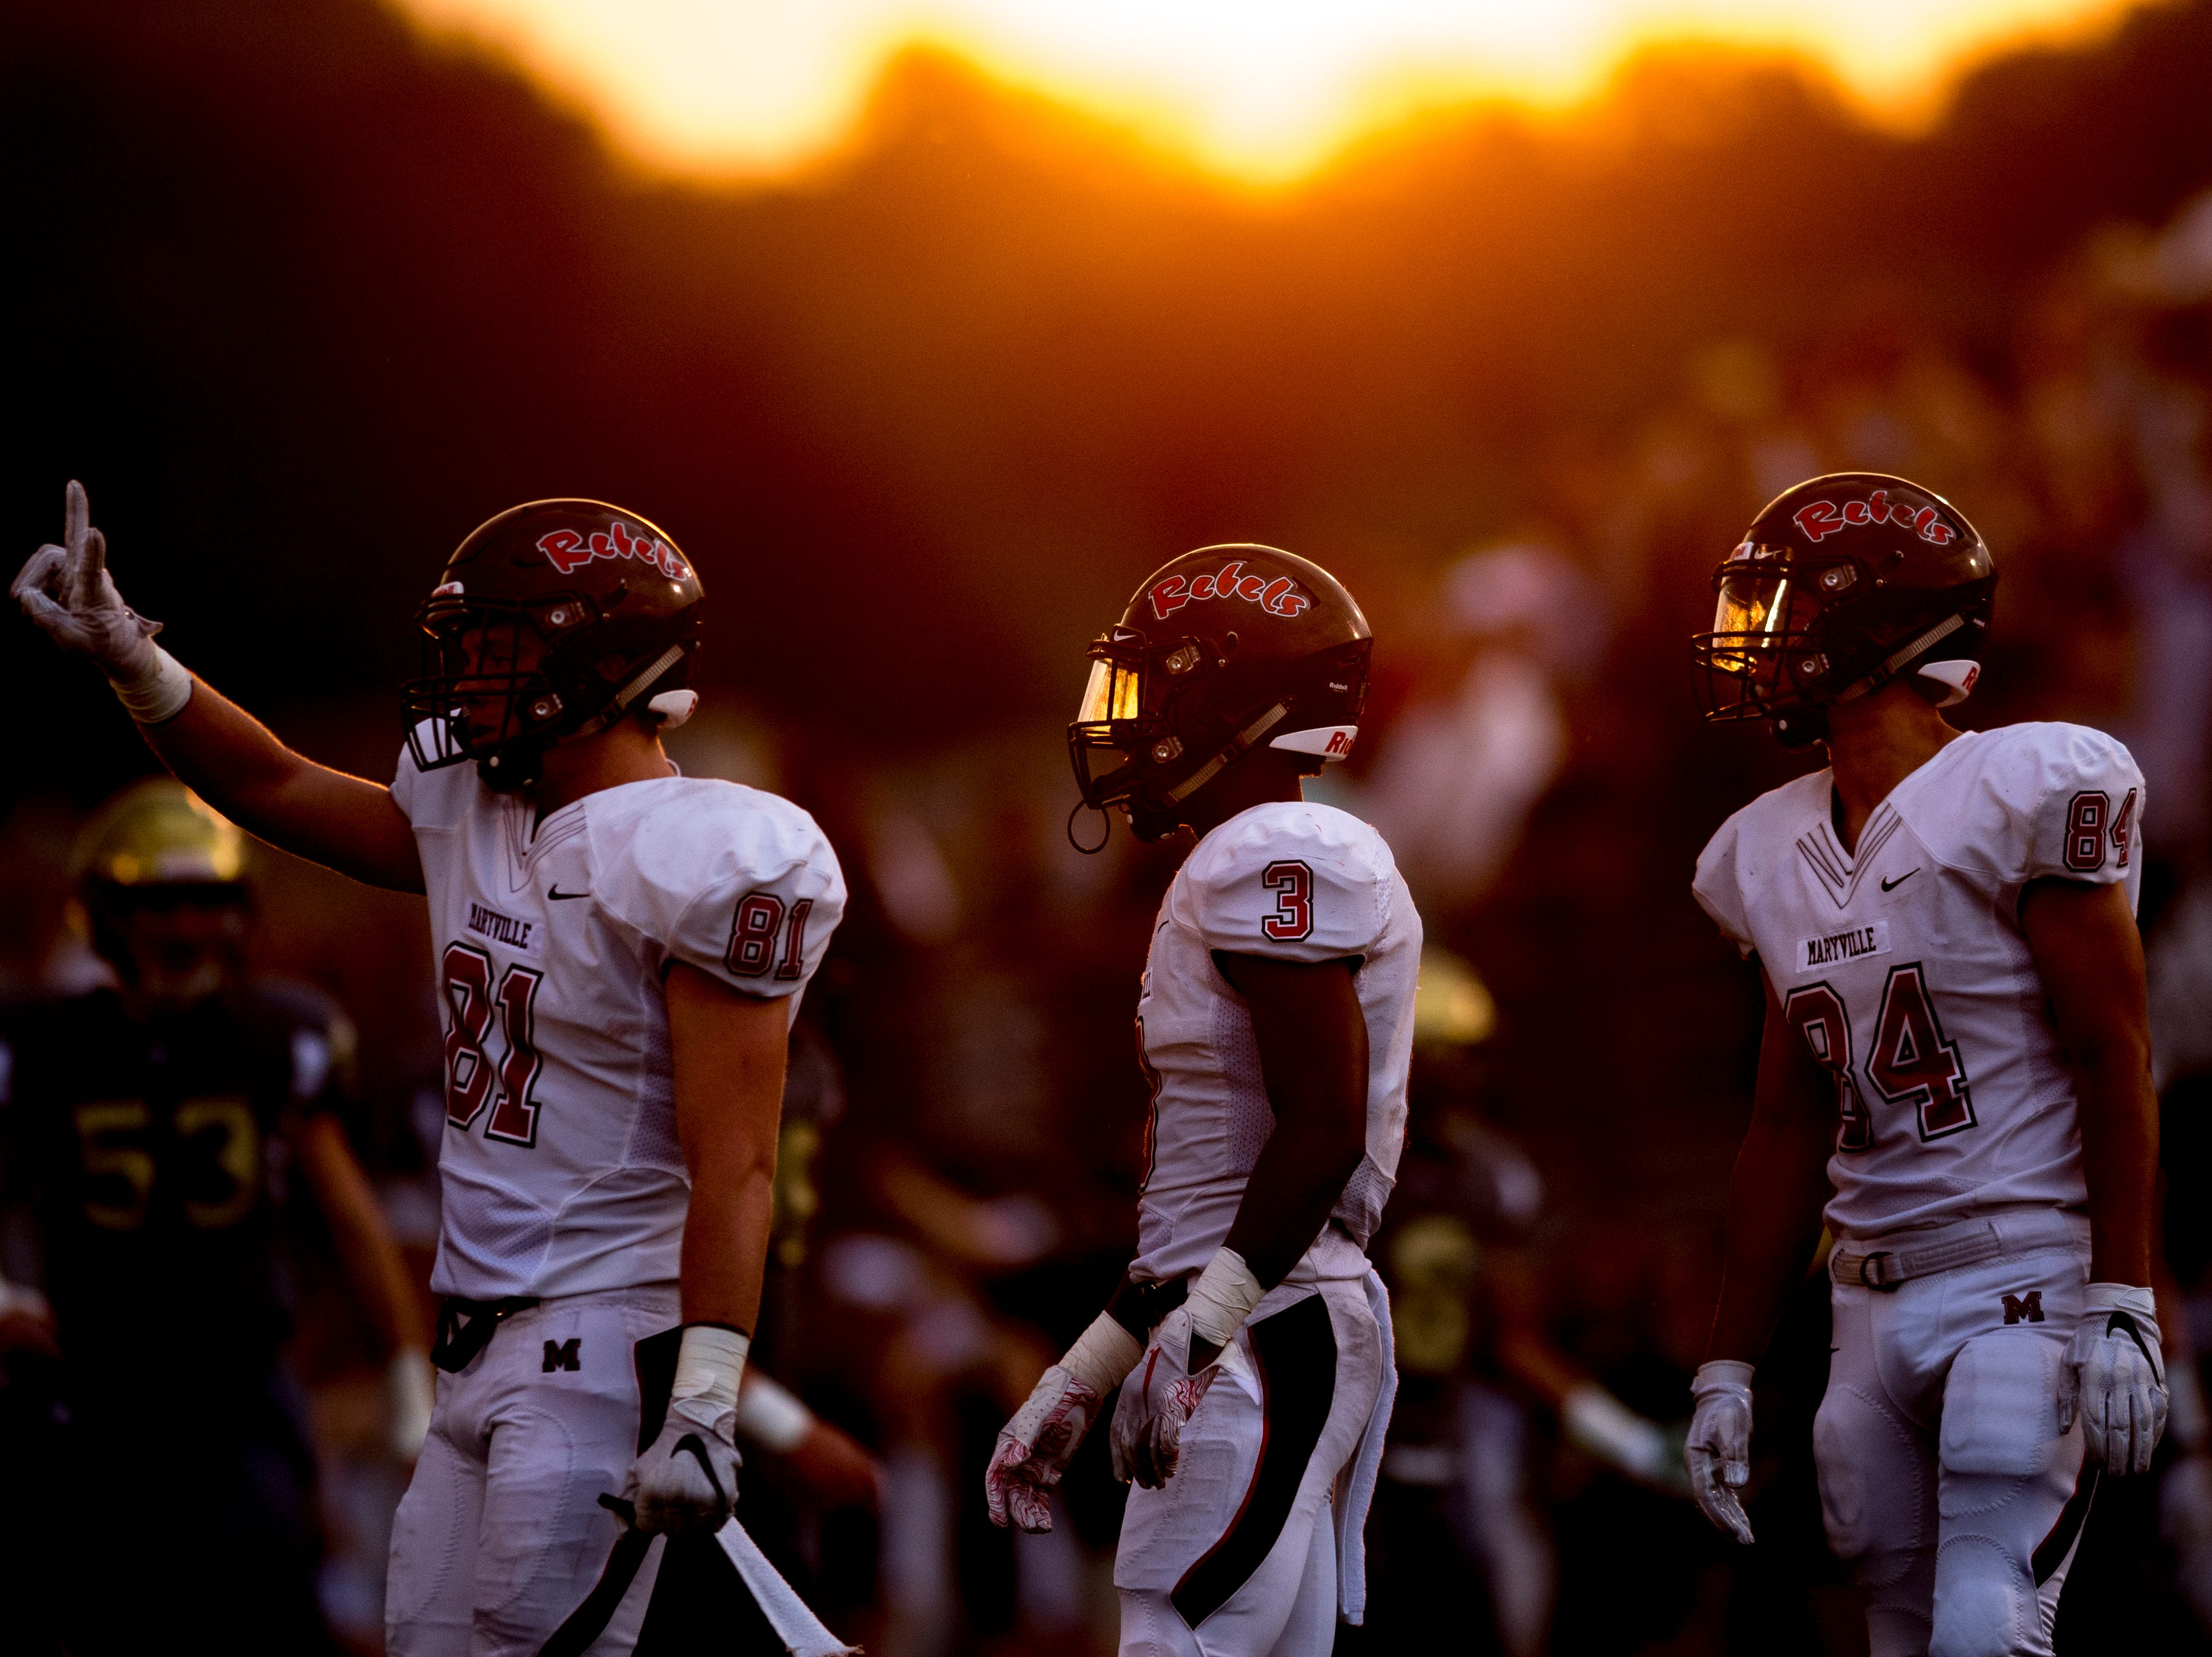 Maryville's Brody Sloan (81), Maryville's A.J. Davis (3) and Maryville's Brayden Anderson (84) on the field as the sun sets behind them during a football game between Maryville and Catholic at Catholic High School in Knoxville, Tennessee on Friday, August 17, 2018.